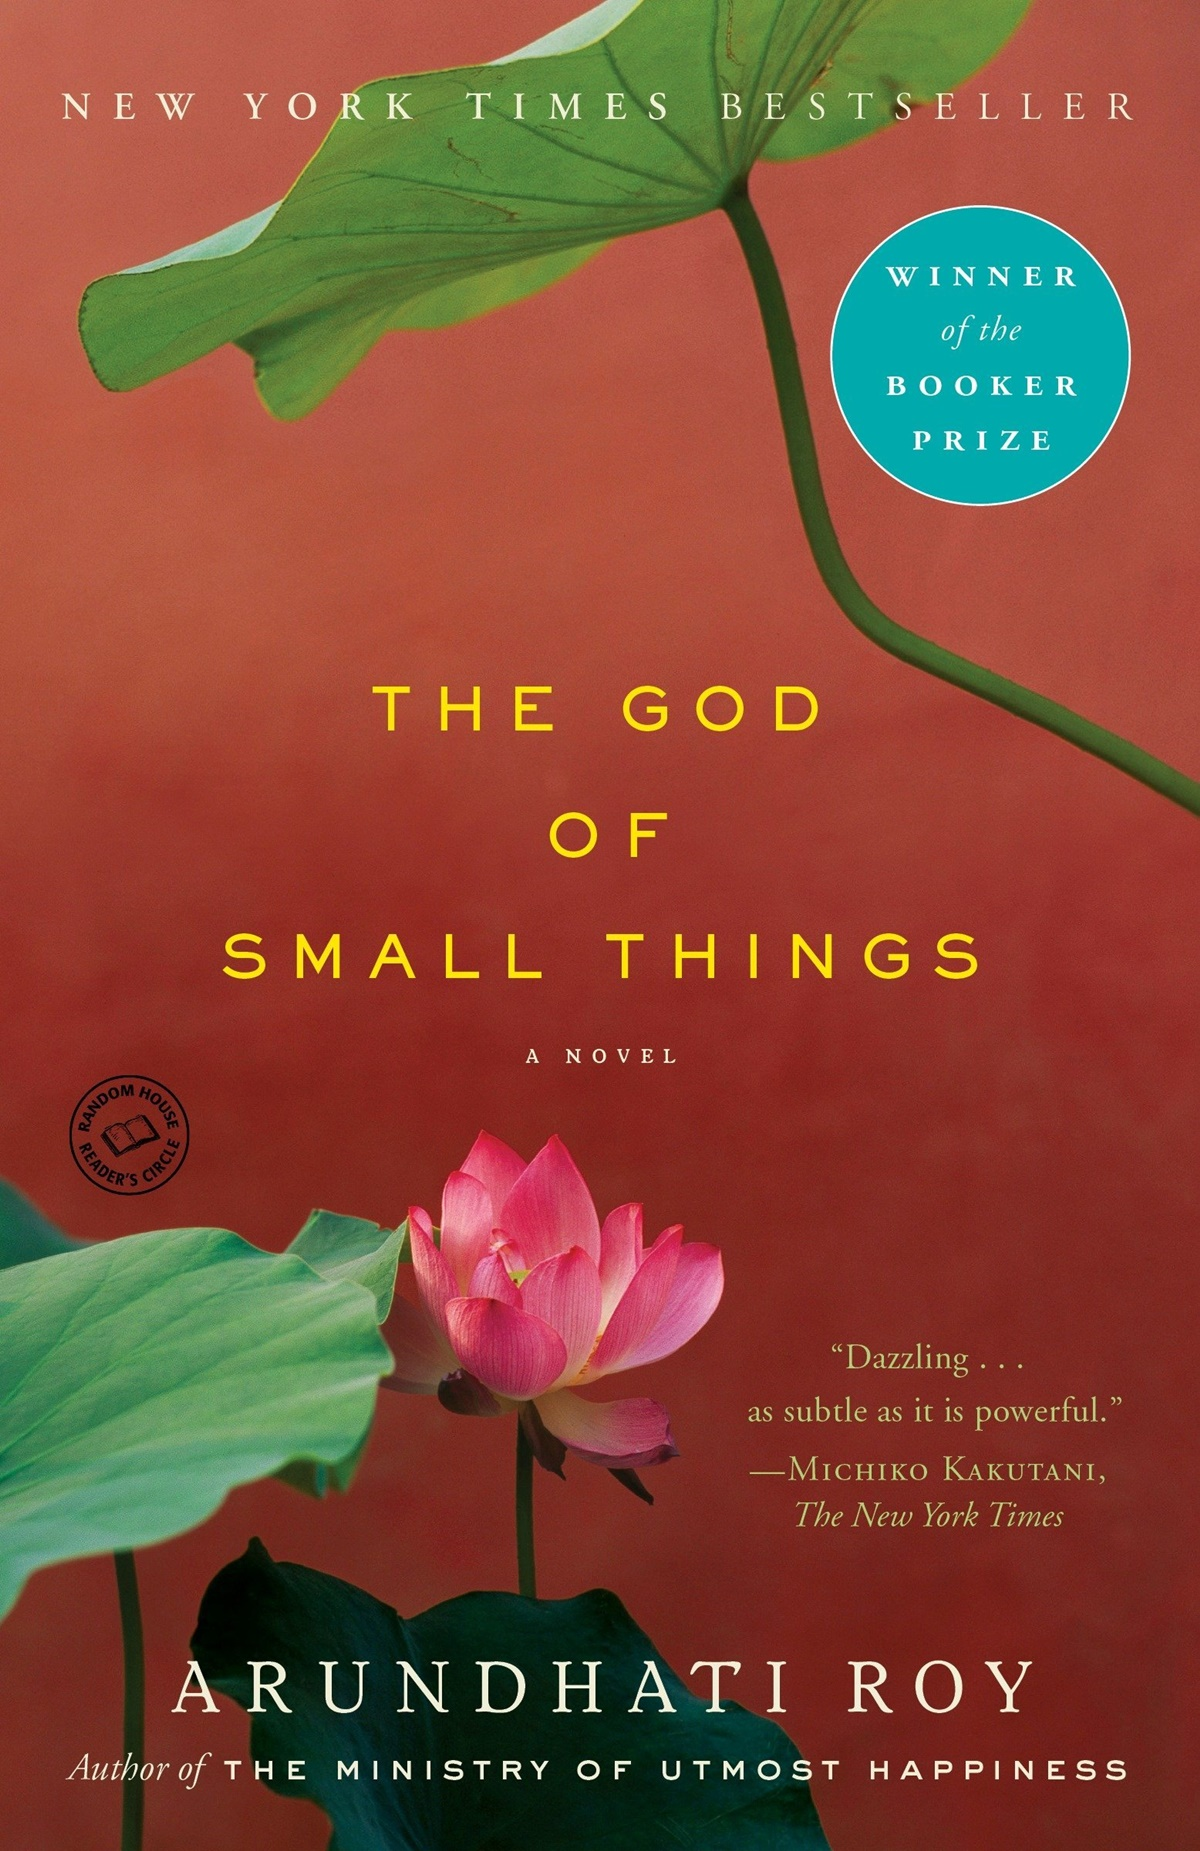 Historical Fiction Books, cover of The God of Small Things by Arundhati Roy, books